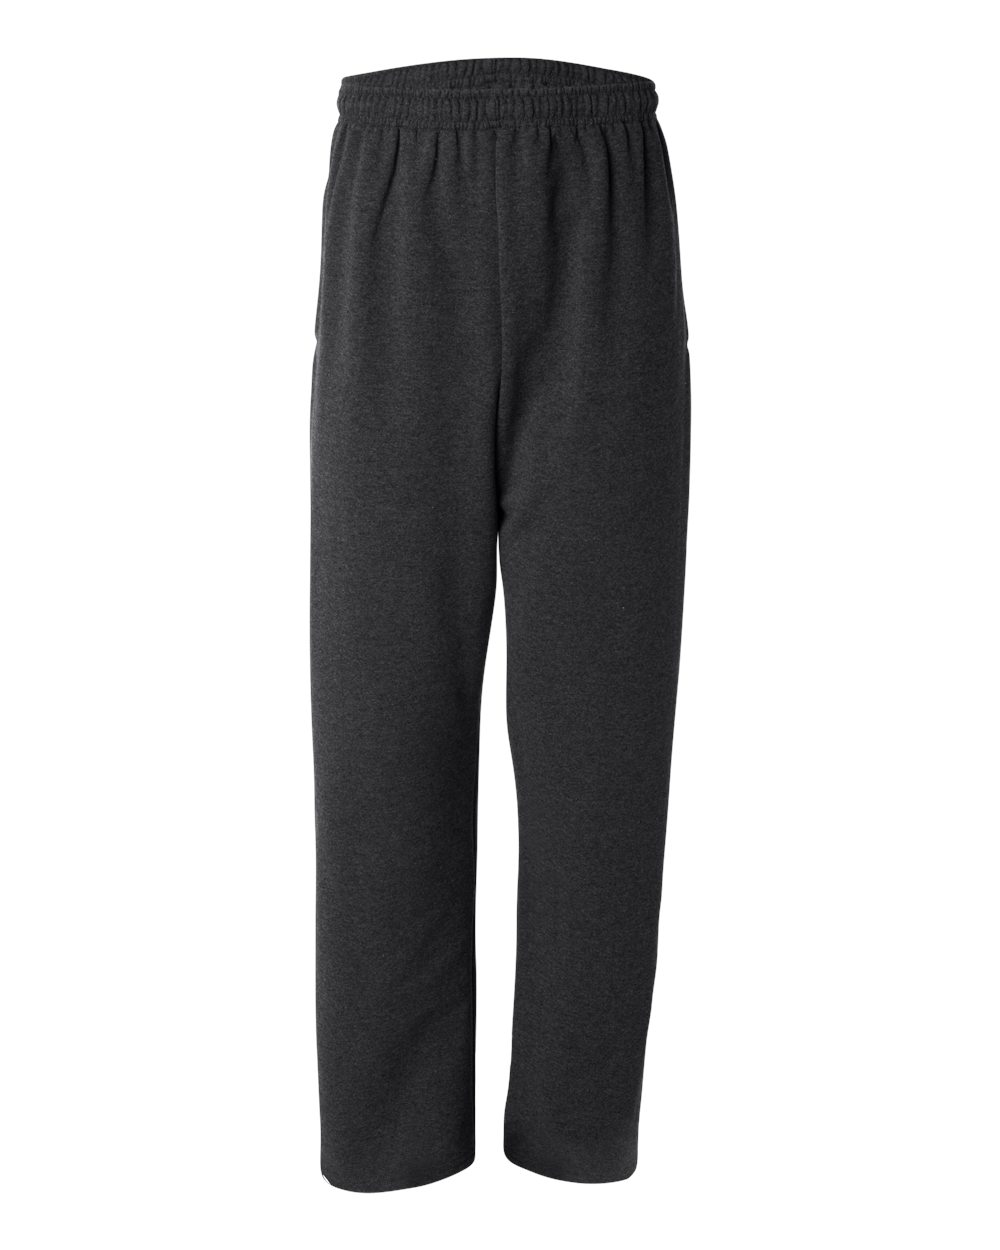 JERZEES-Mens-NuBlend-Open-Bottom-Sweatpants-with-Pockets-974MPR-up-to-3XL thumbnail 12